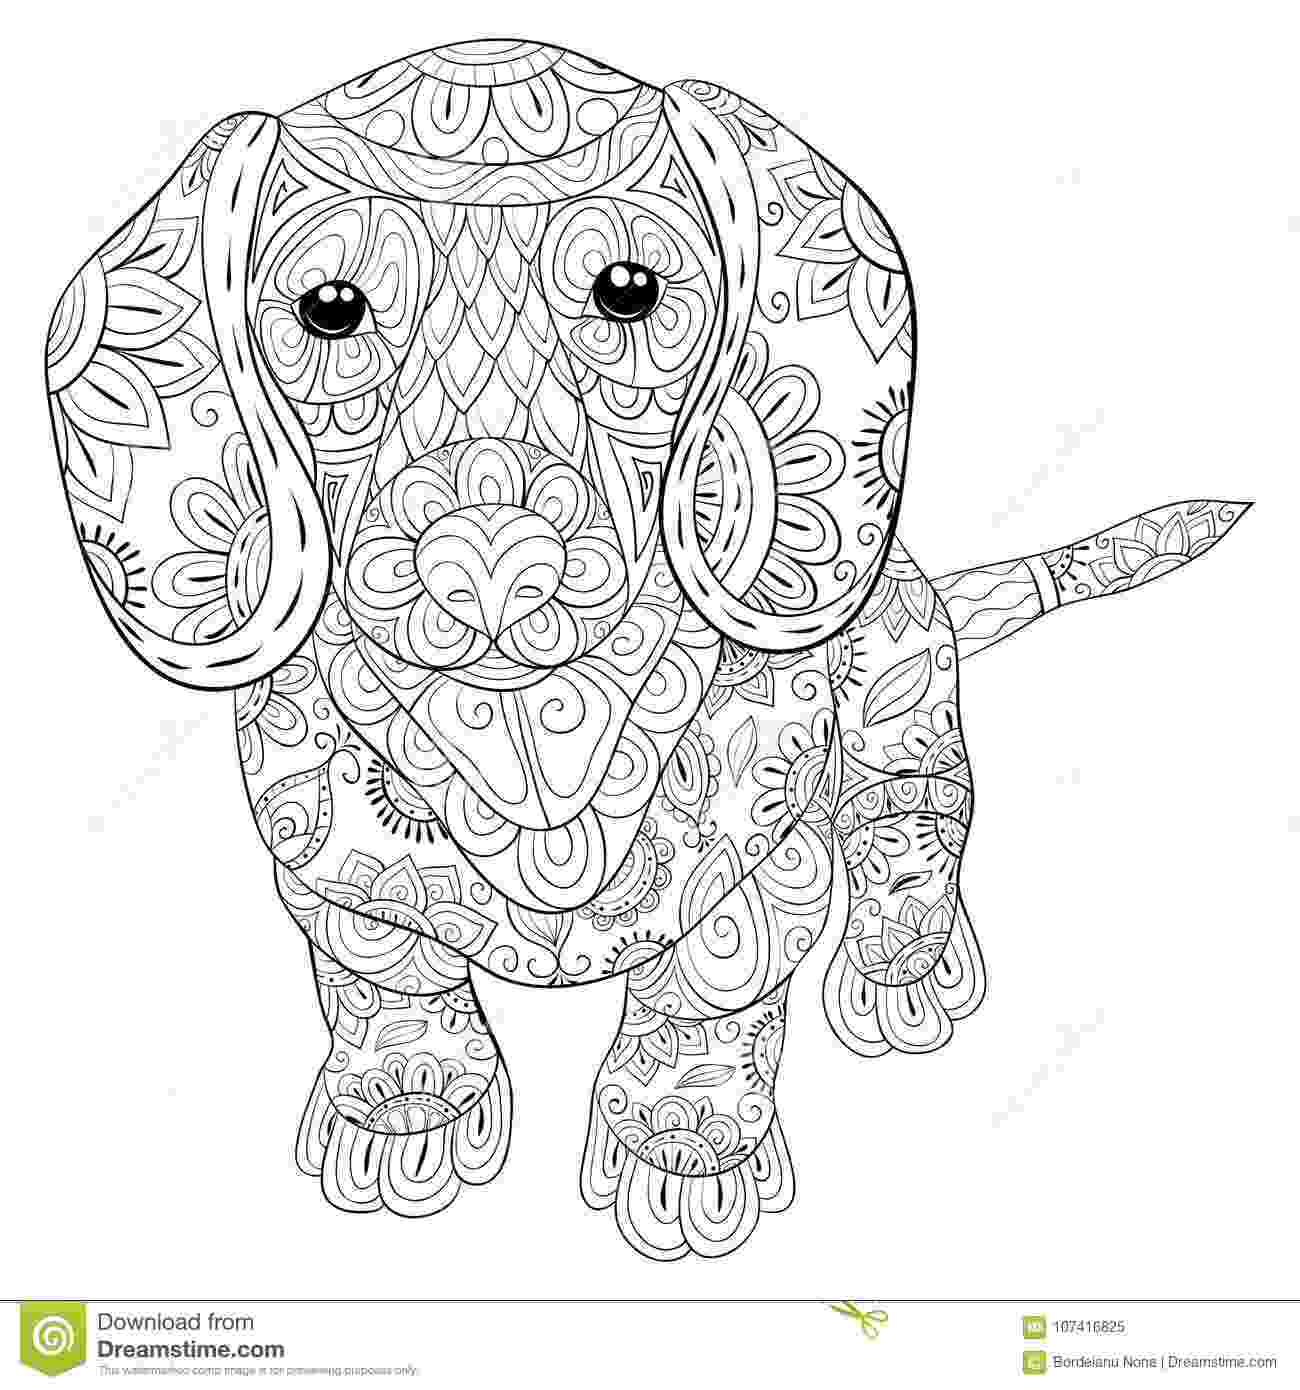 real animal coloring pages adult coloring page a cute isolated dog for relaxingzen coloring pages animal real